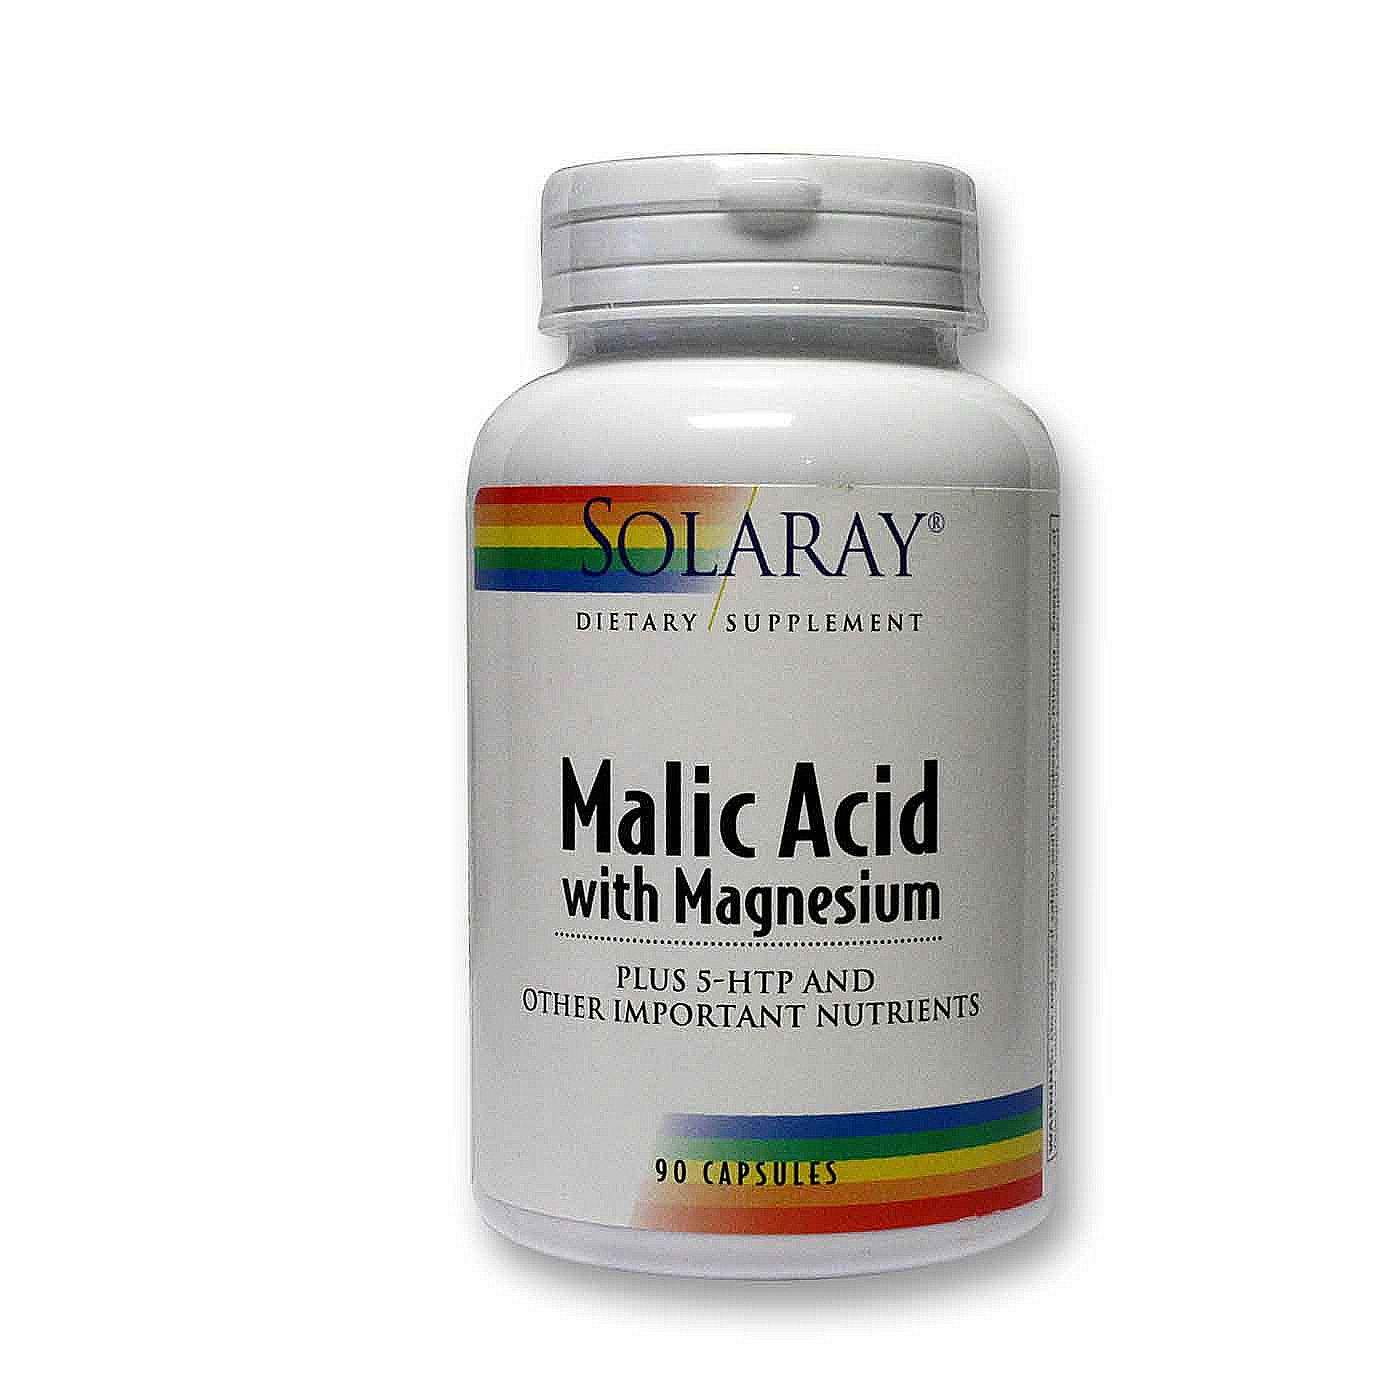 Malic acid magnesium supplements